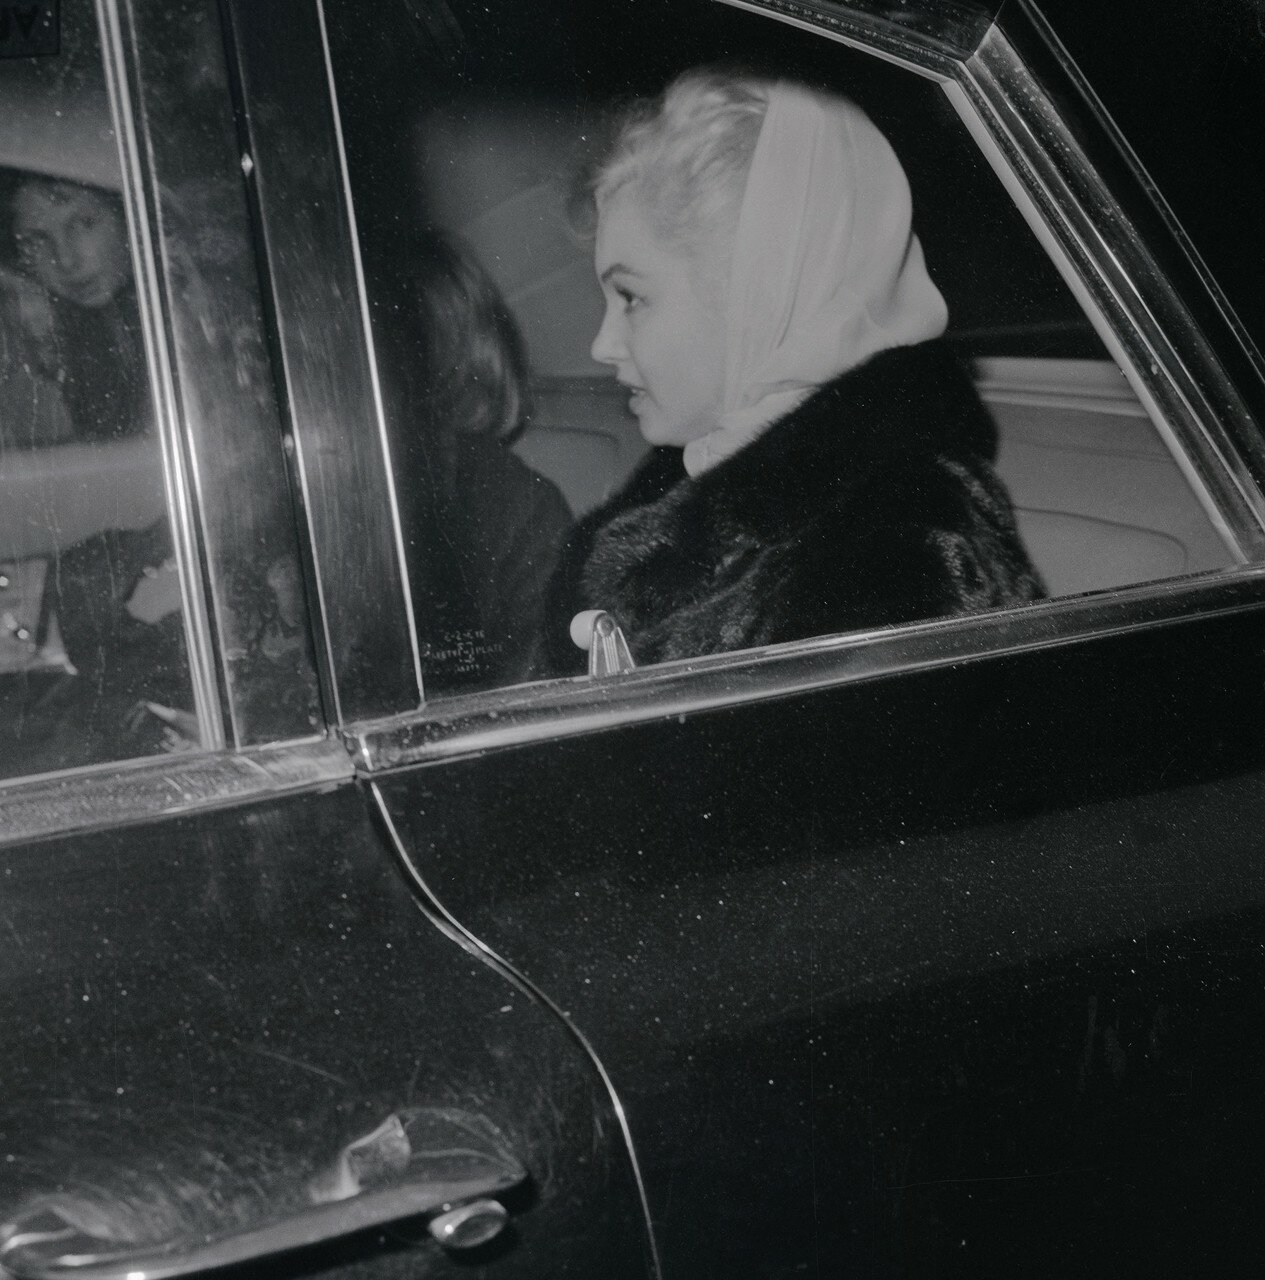 Marilyn Monroe Wearing a Scarf and Sitting in Car